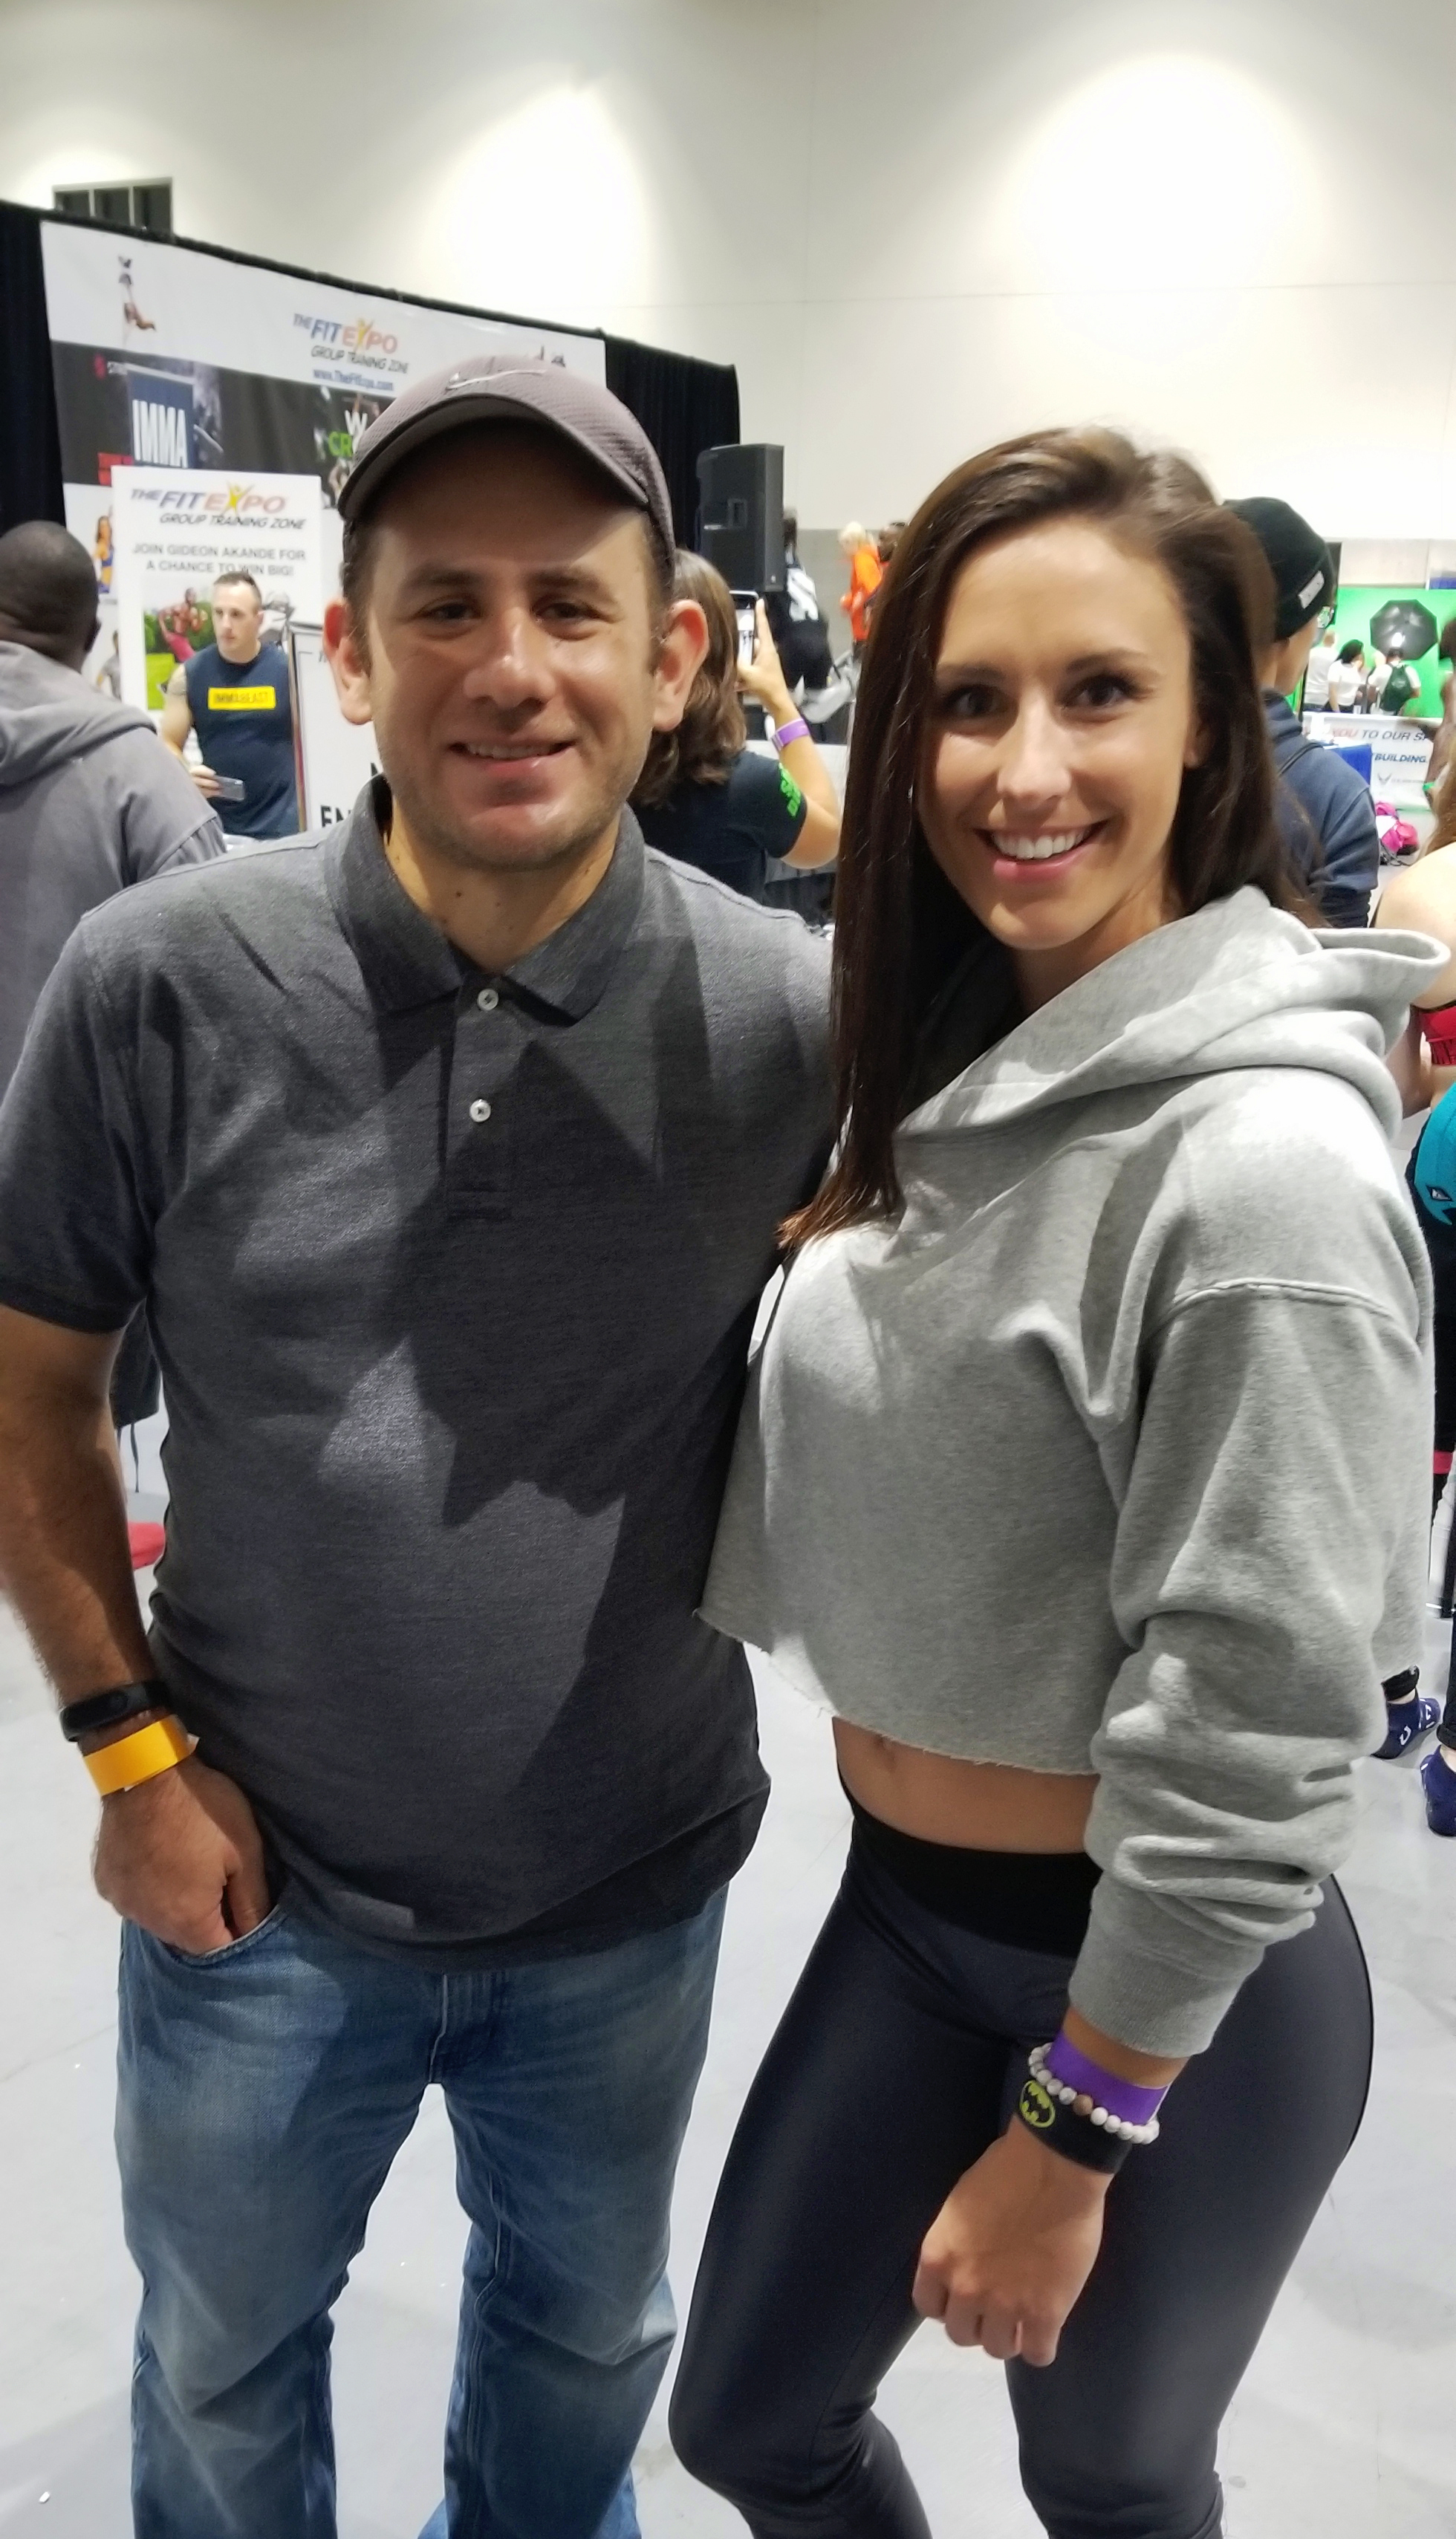 With fit mom Samantha Sage at the San Diego Fit Expo where I got to get a photo together. Looking forward to working together again in the upcoming weeks.